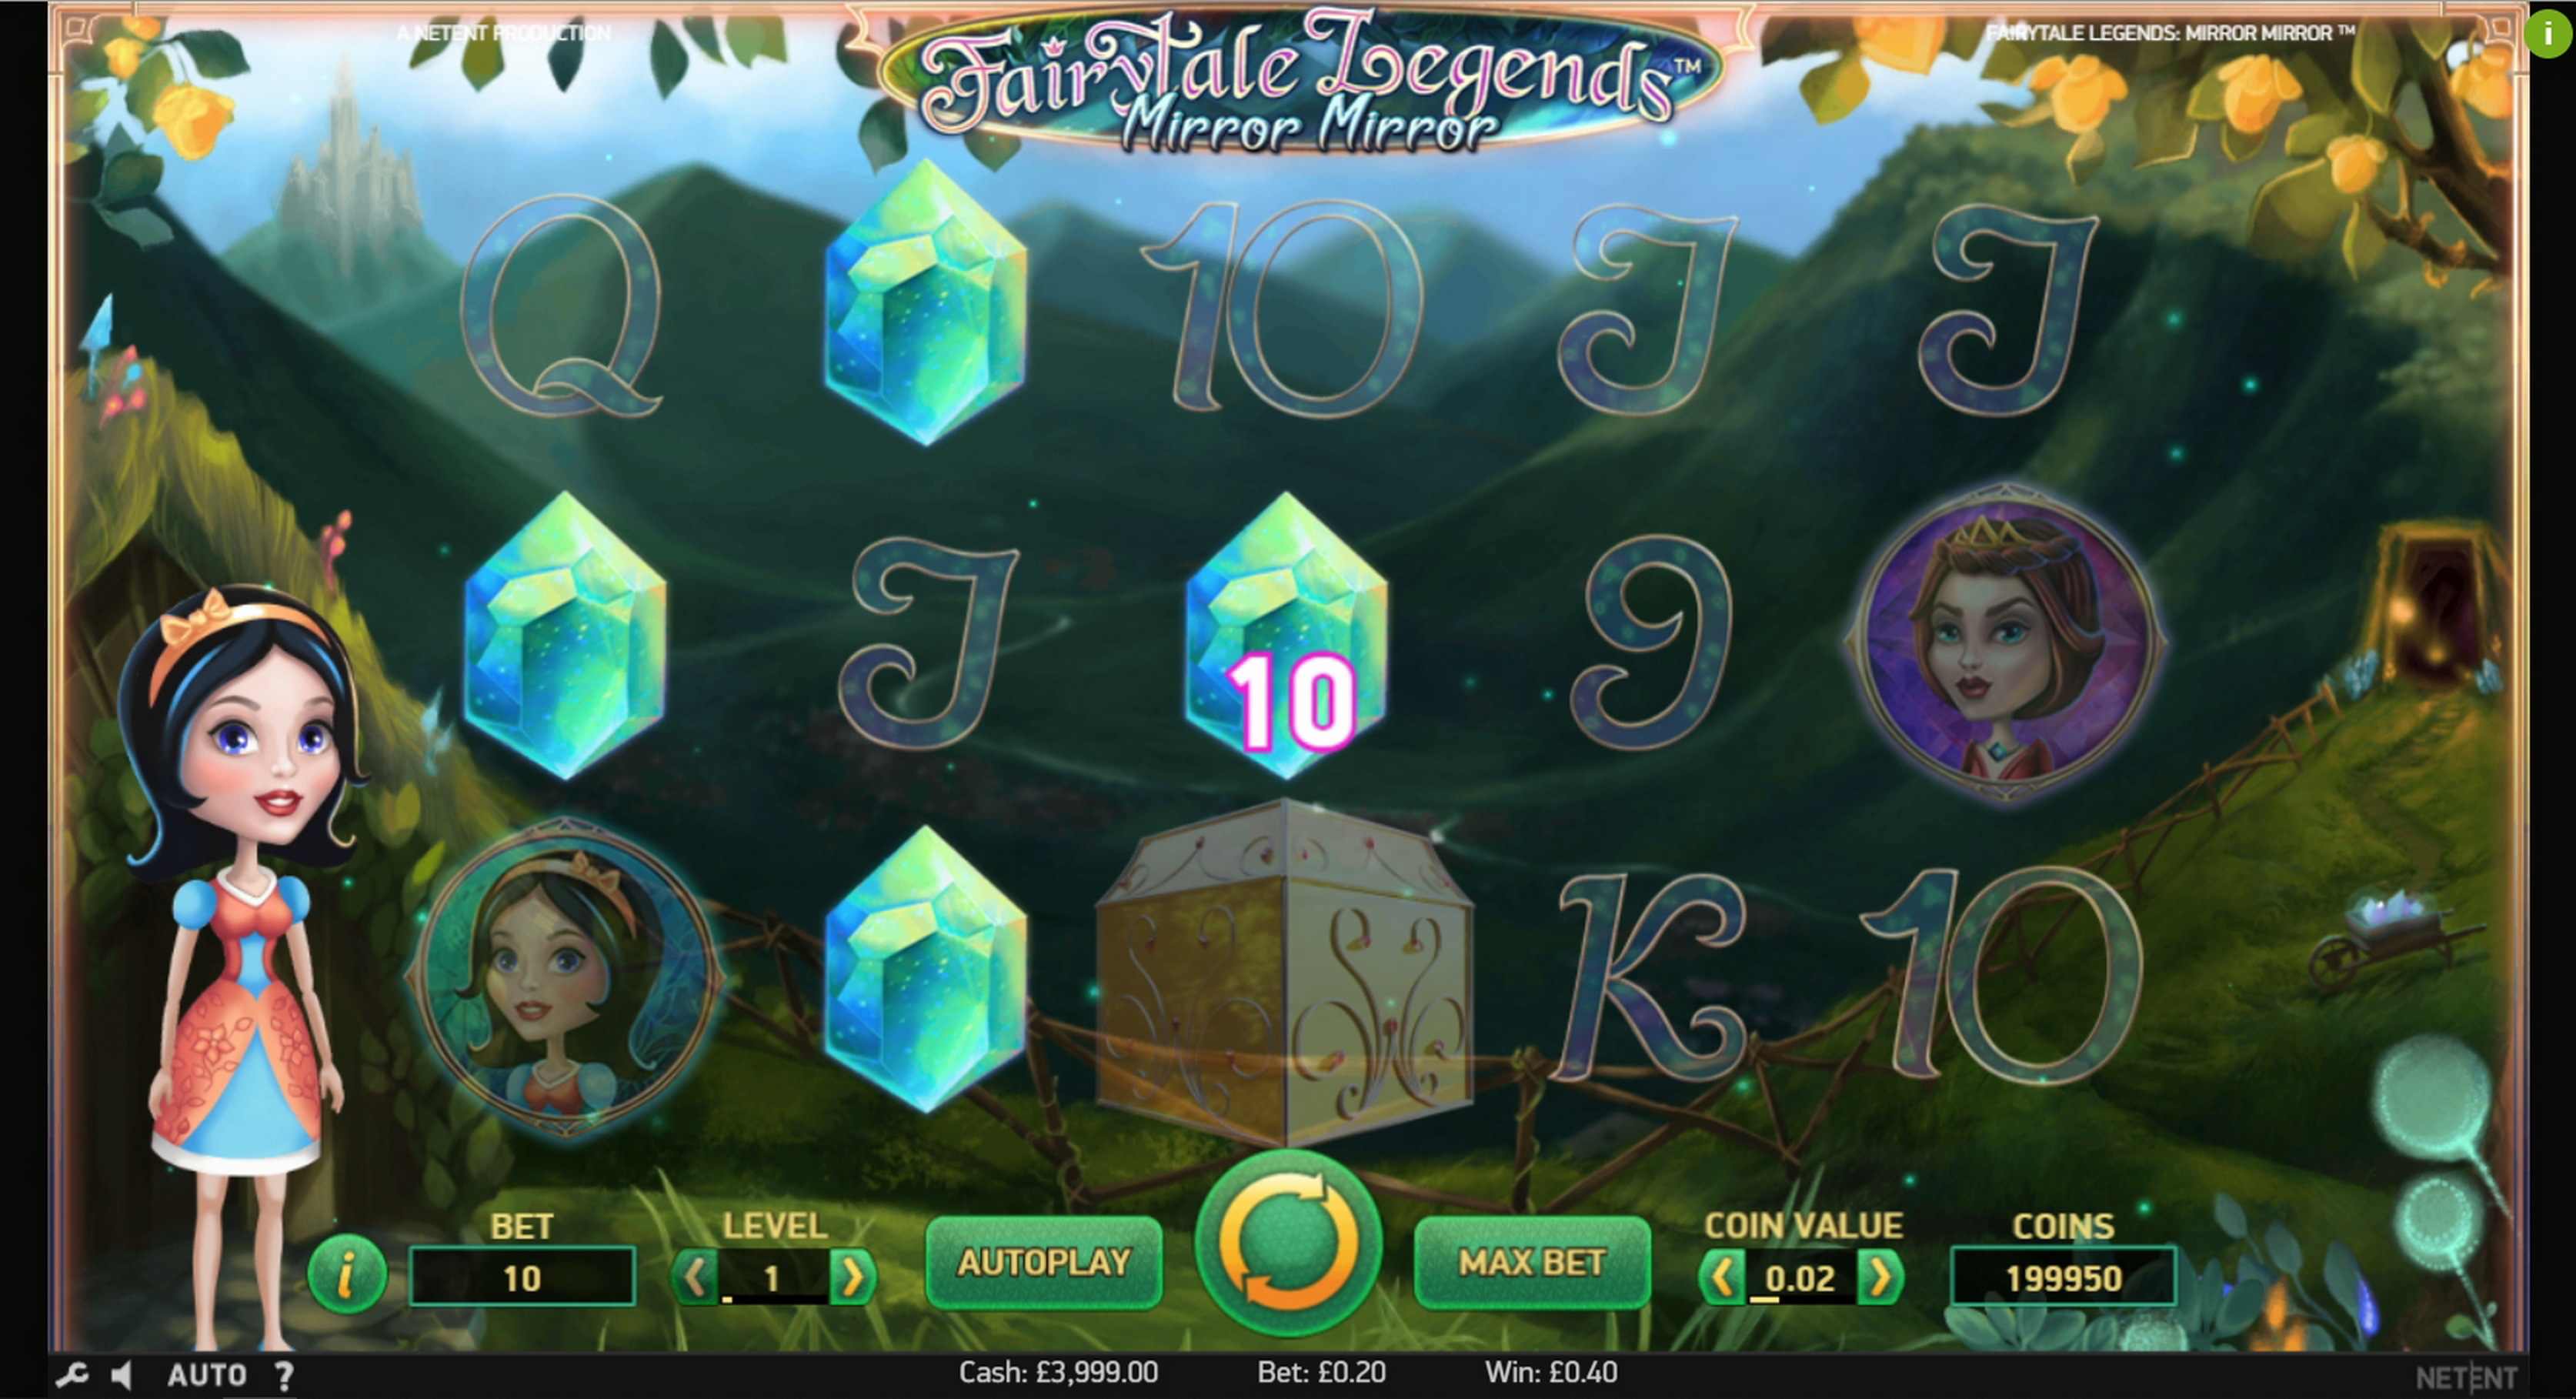 Win Money in Fairytale Legends: Mirror Mirror (NetEnt) Free Slot Game by NetEnt